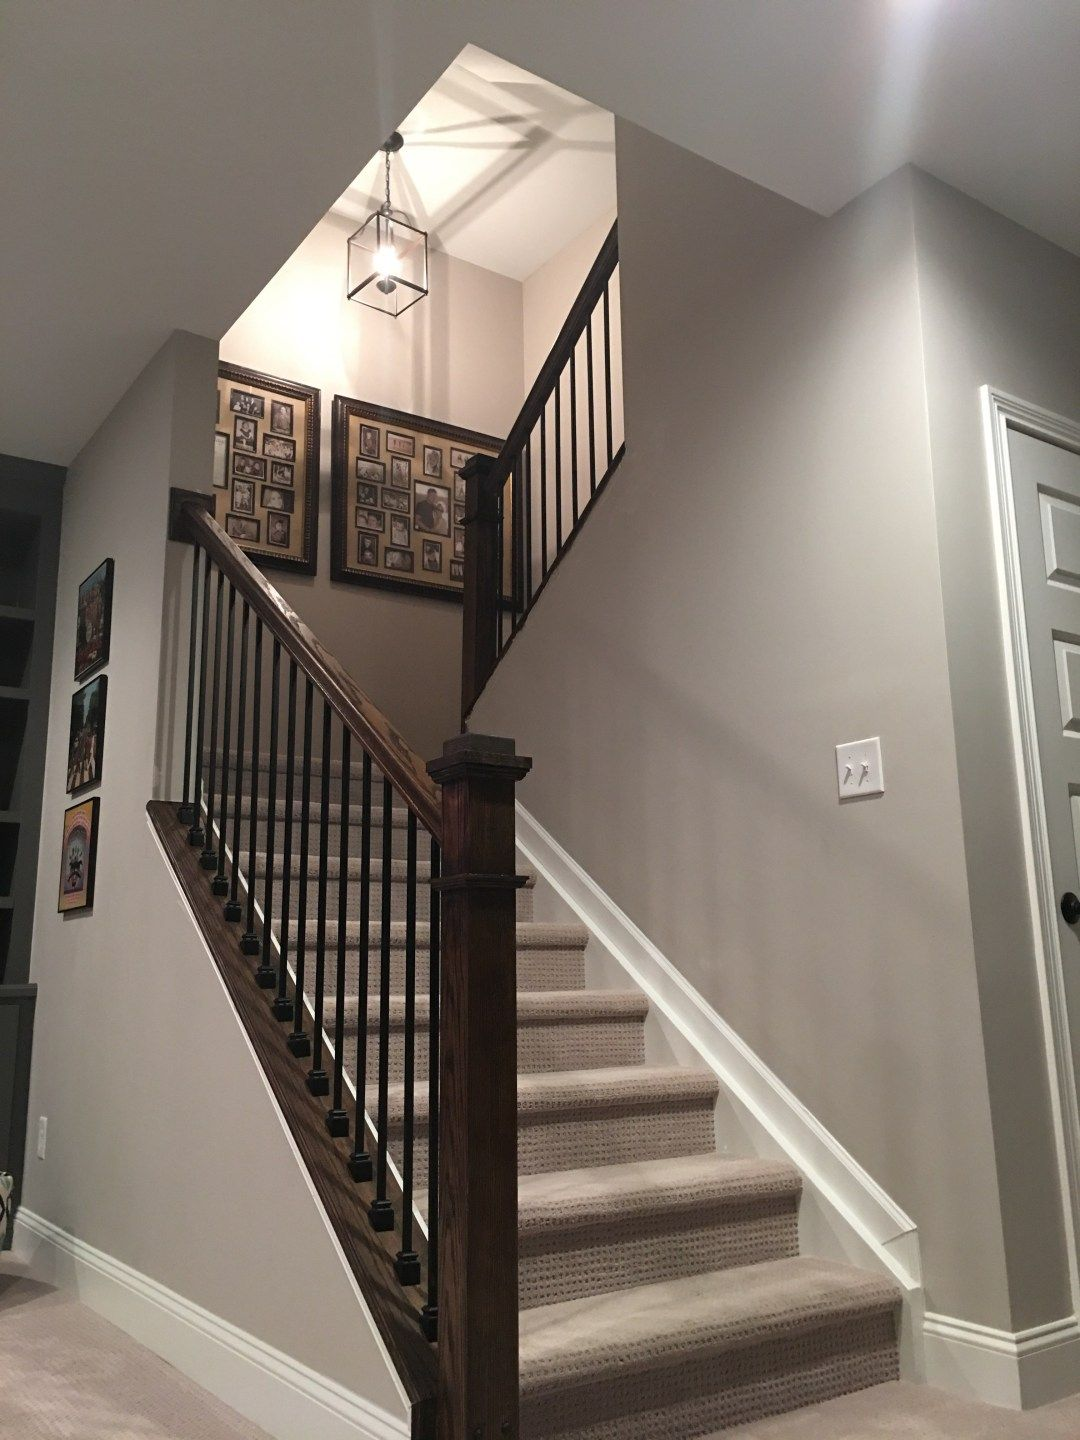 decorative interior stair railing kits ideas for.htm diy banisters  with images  diy stair railing  diy stairs  stair railing